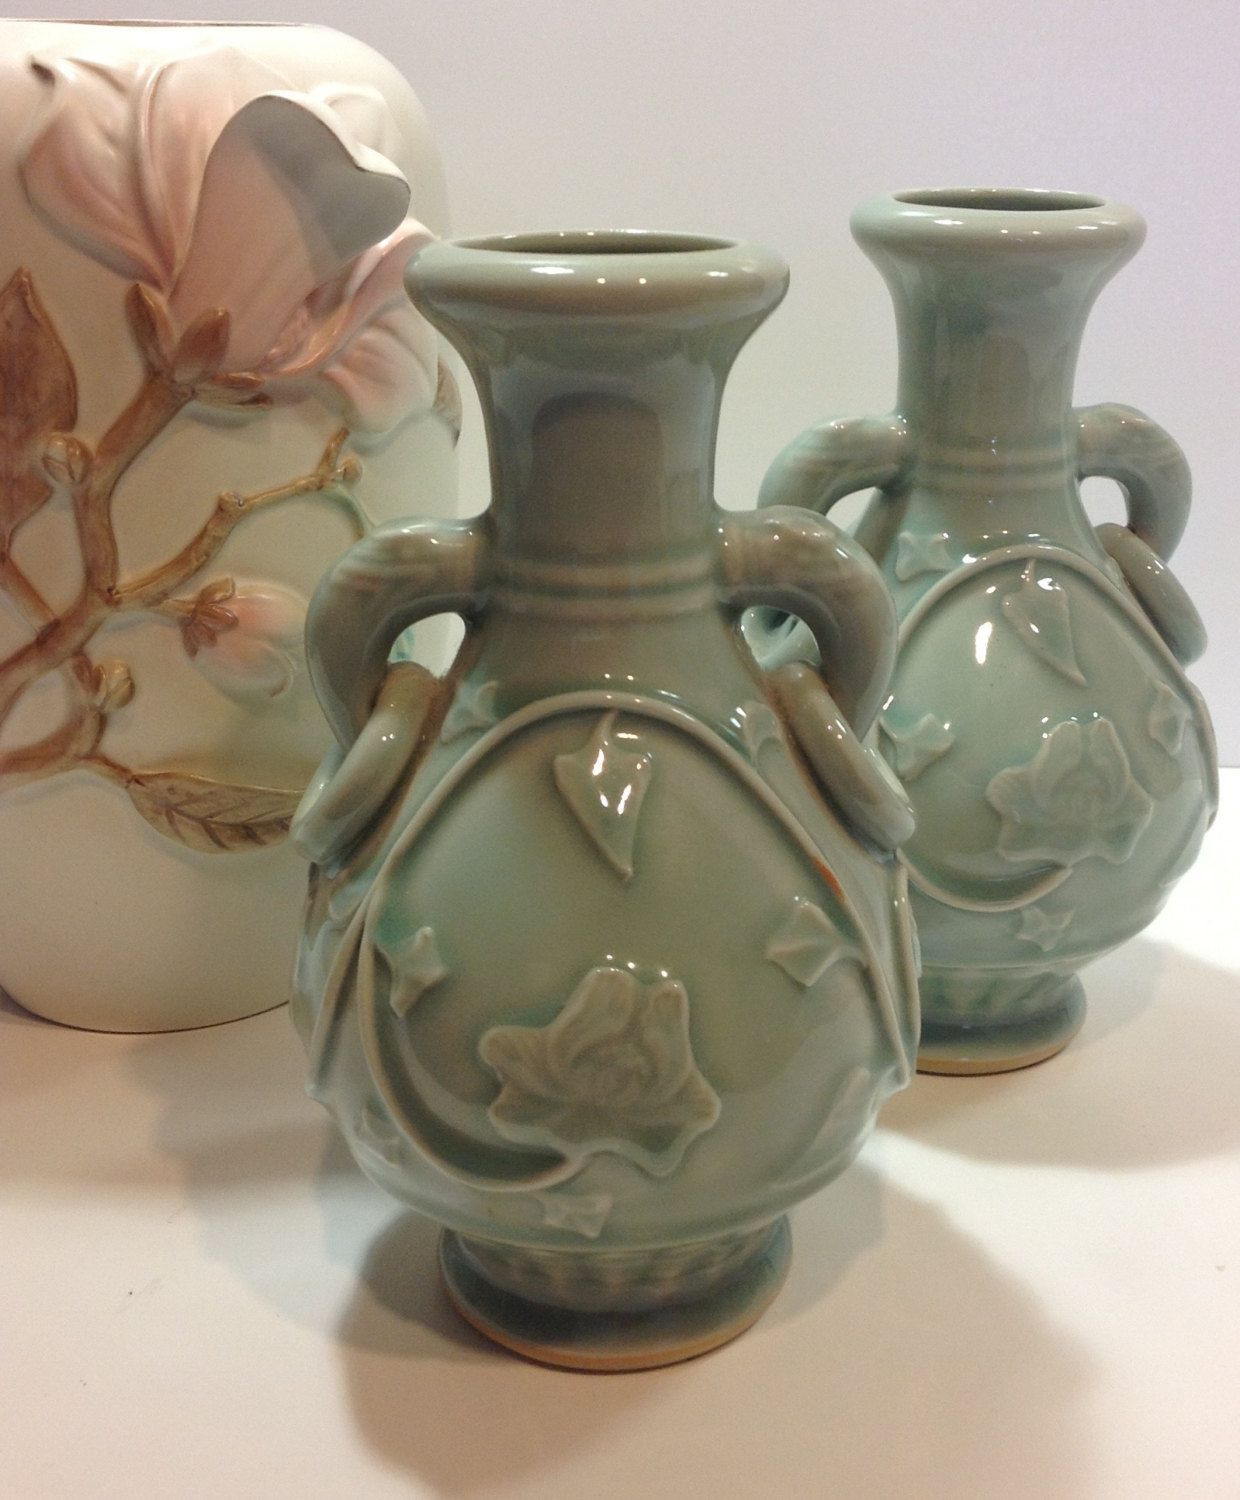 Blue Ceramic Vases Sale Of Ceramic Vase Set Collection area Floor Rugs New Joaquin Gray Vases In Ceramic Vase Set Pics Vintage asian Style Vases Celadon Set Of Longquan Style Decor Vase Of